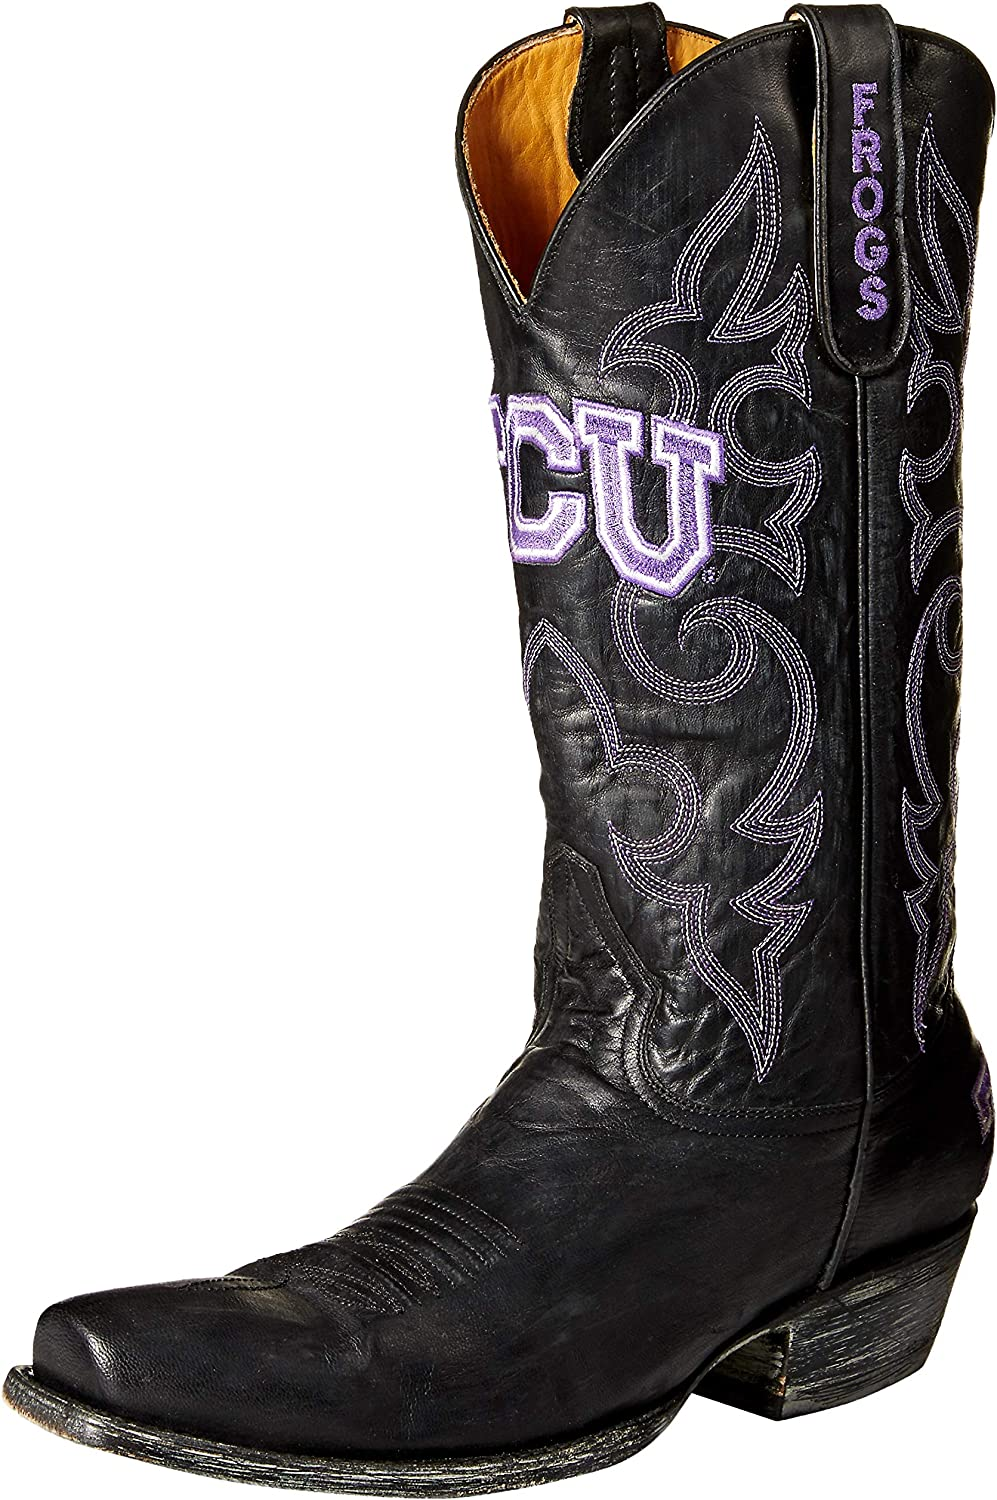 63953c9dc60 NCAA Horned Boots Style Room Board Men's Frogs TCU nybuadac72 ...